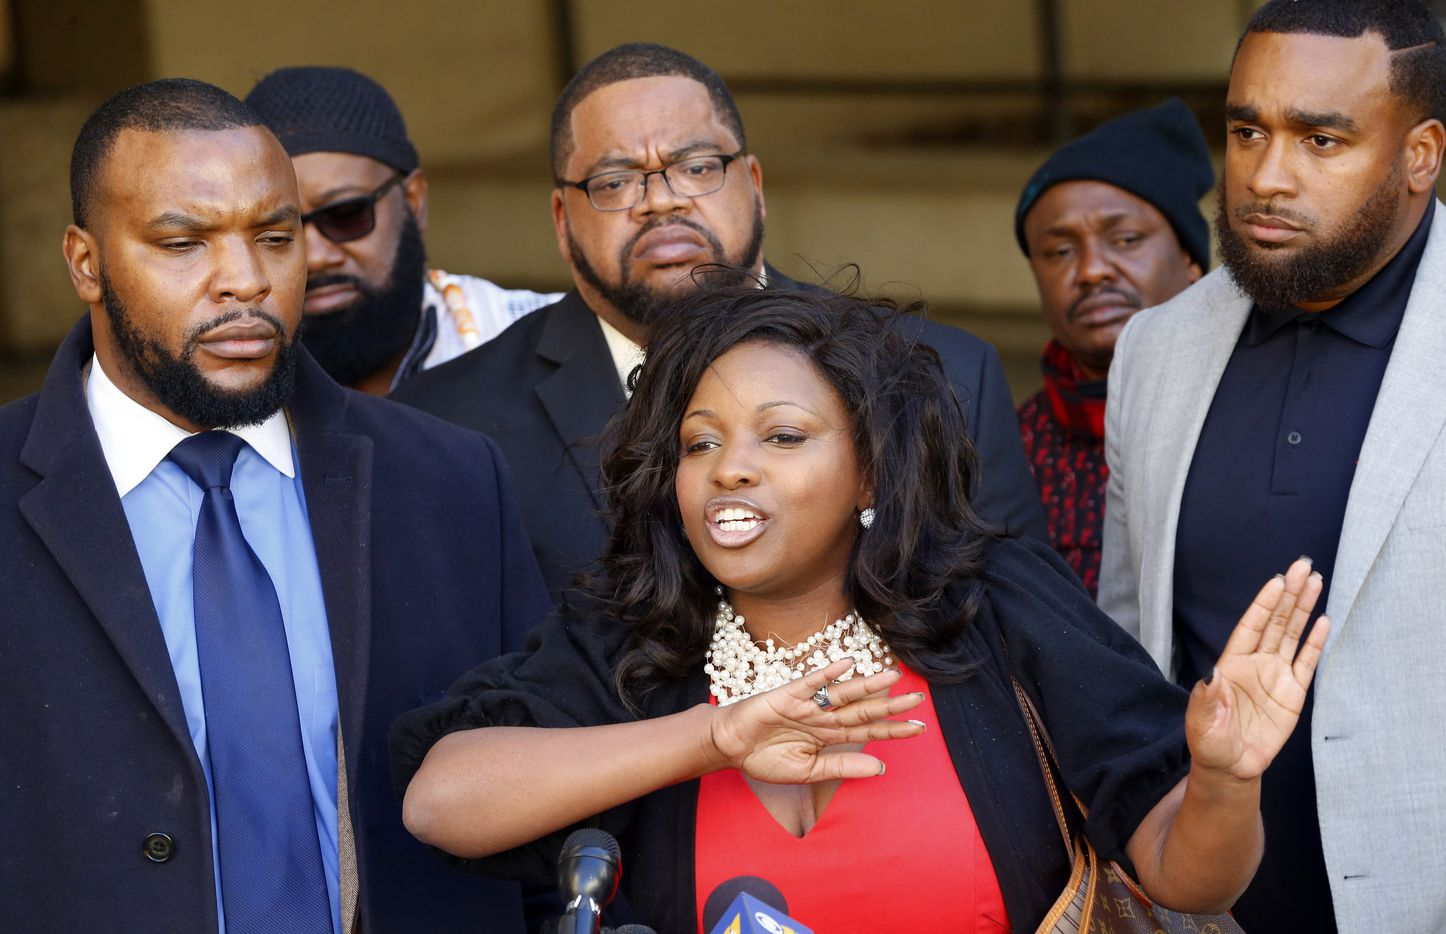 Jasmine Crockett, an attorney for the Craig family, responds to Fort Worth police Chief Joel Fitzgerald's decision to suspend an officer for 10 days without pay. (Tom Fox/Staff Photographer)